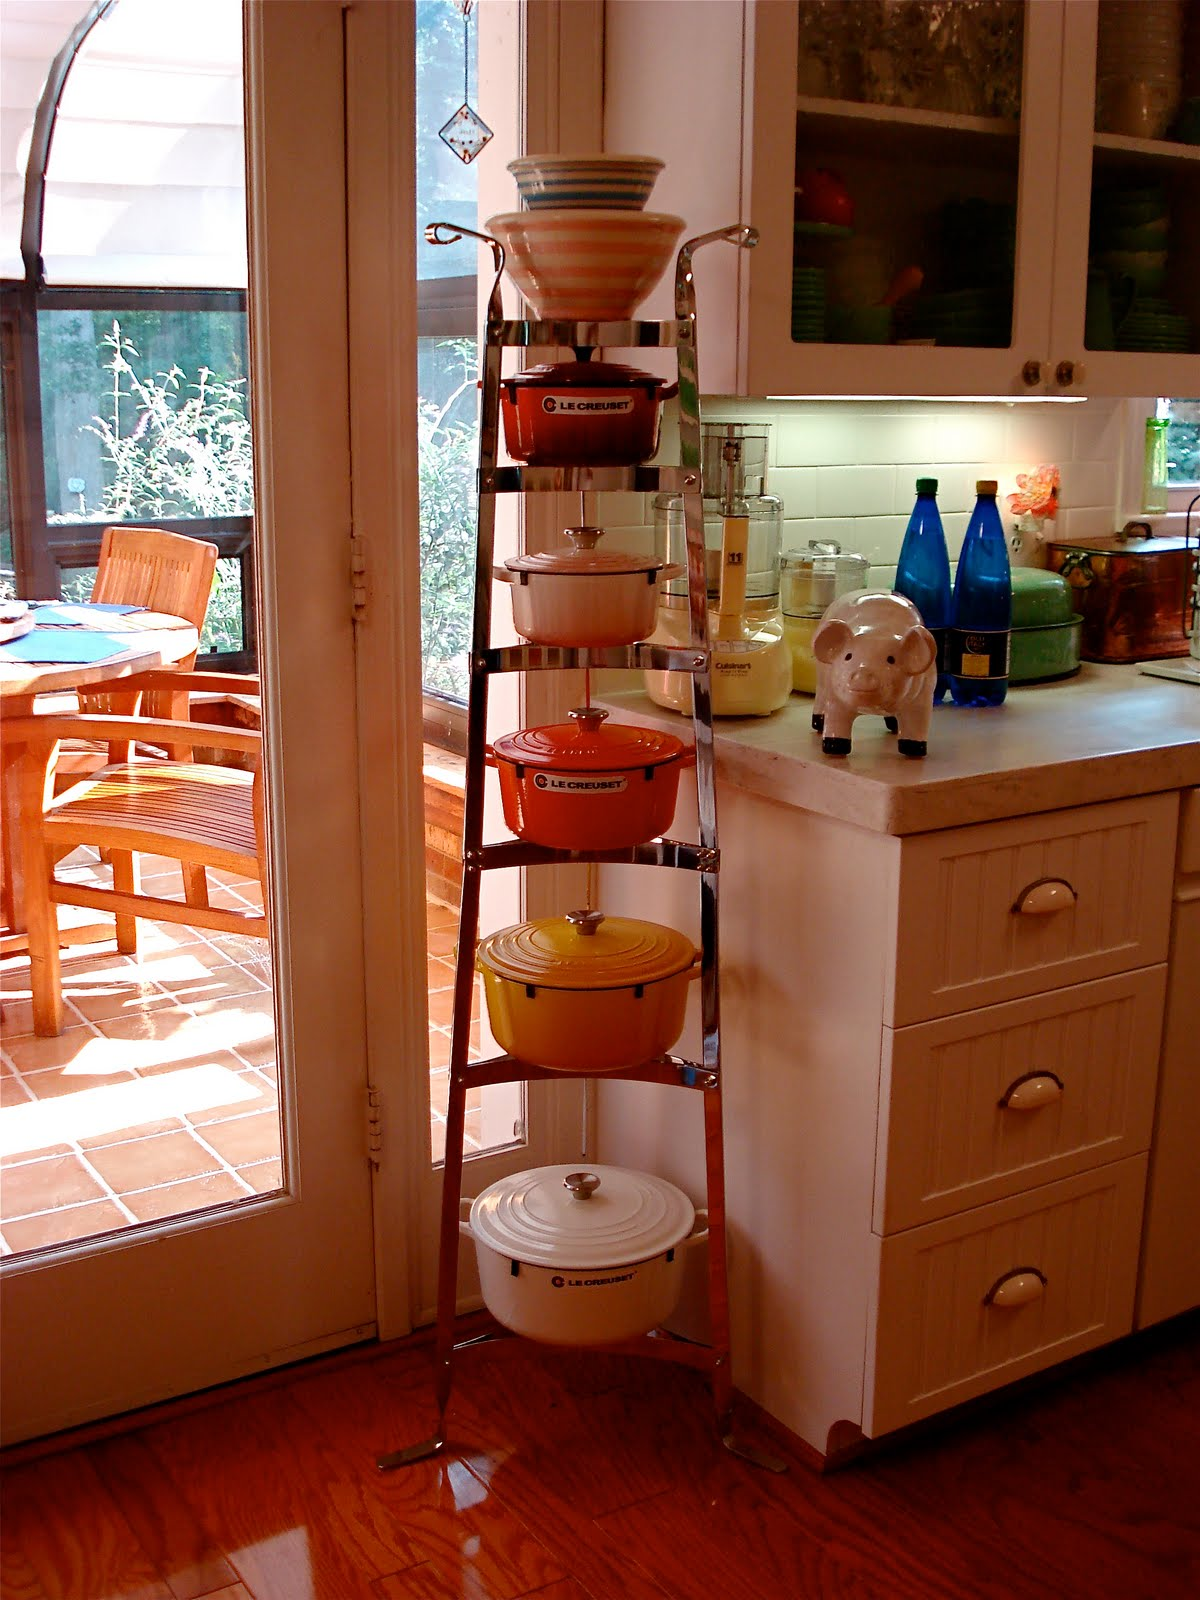 The Le Creuset That Almost Got Away